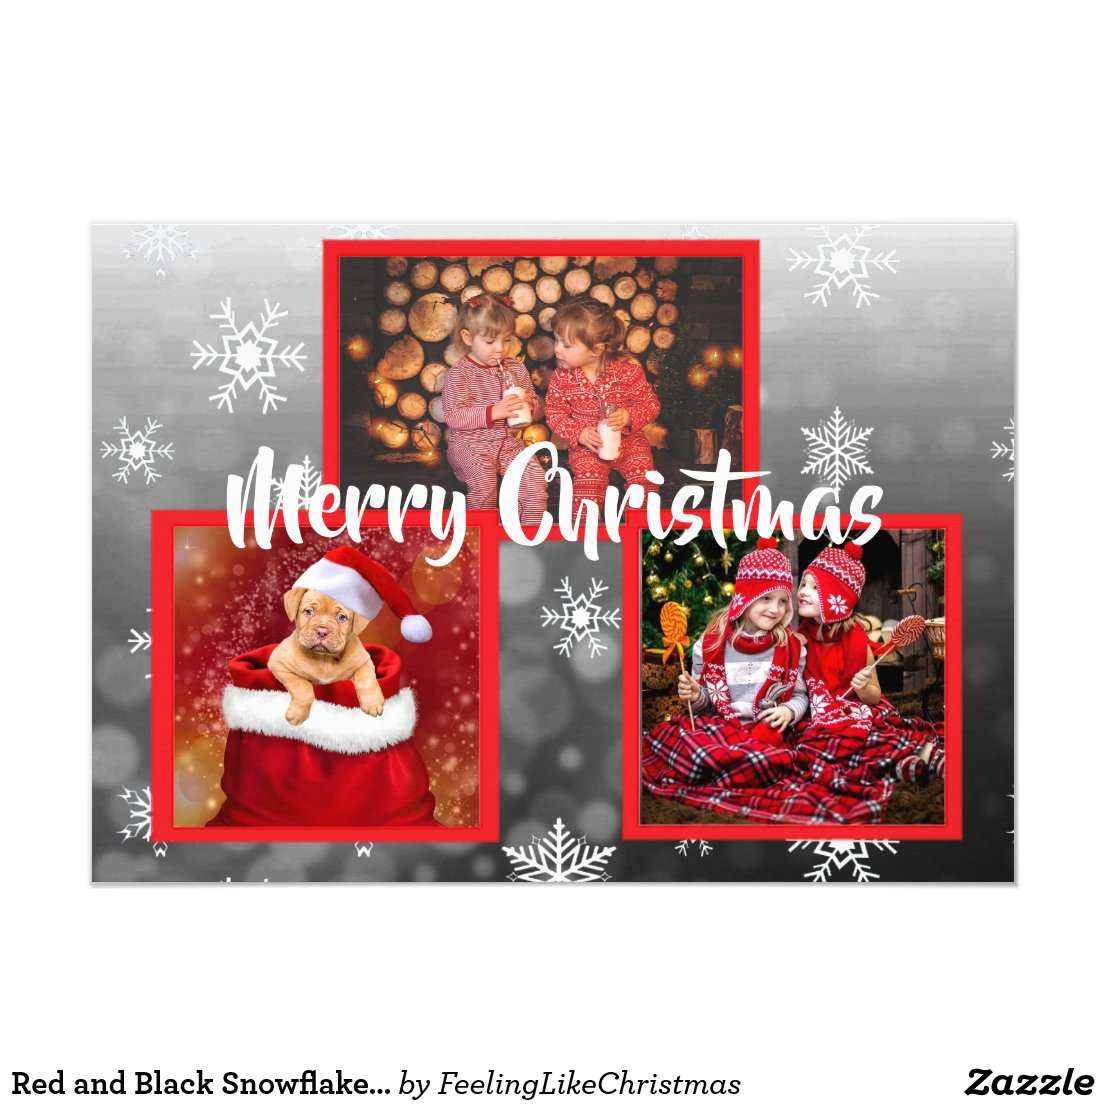 Red and Black Snowflakes Family Photos Christmas